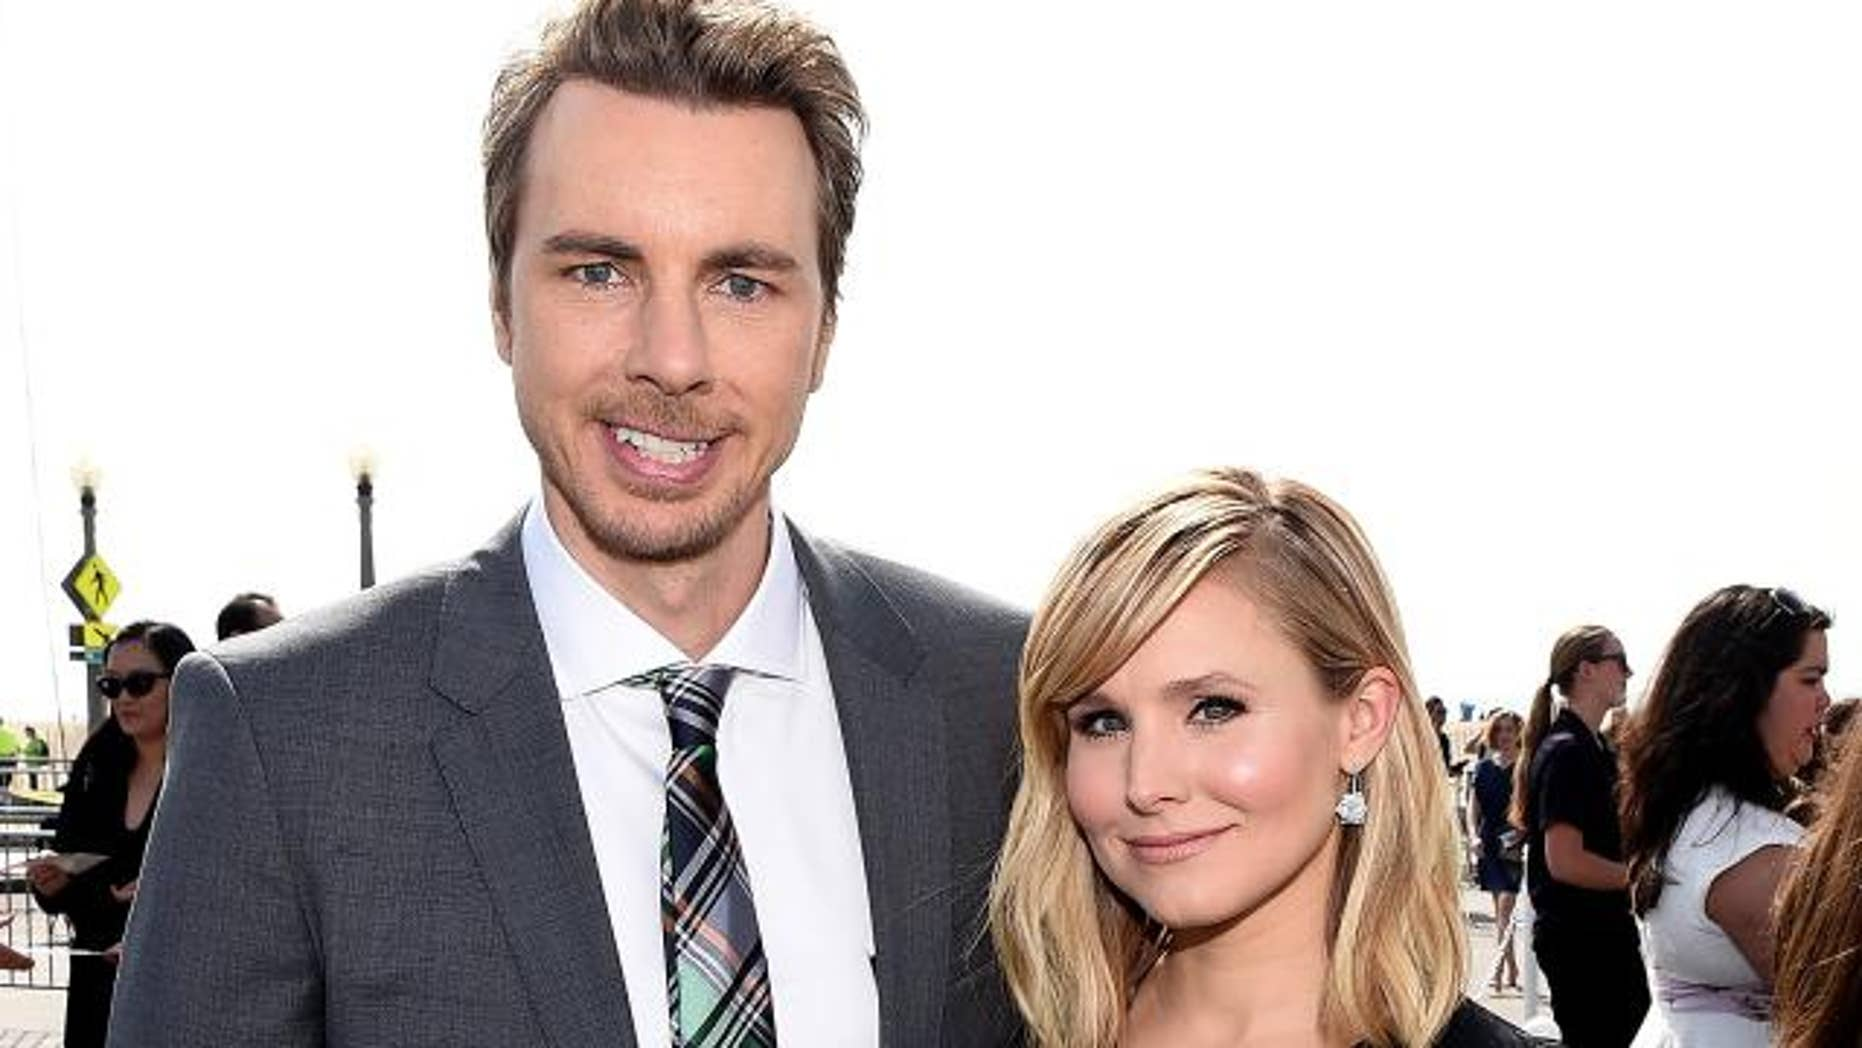 Dax Shepard and Kristen Bell shared a steamy kiss on Instagram.